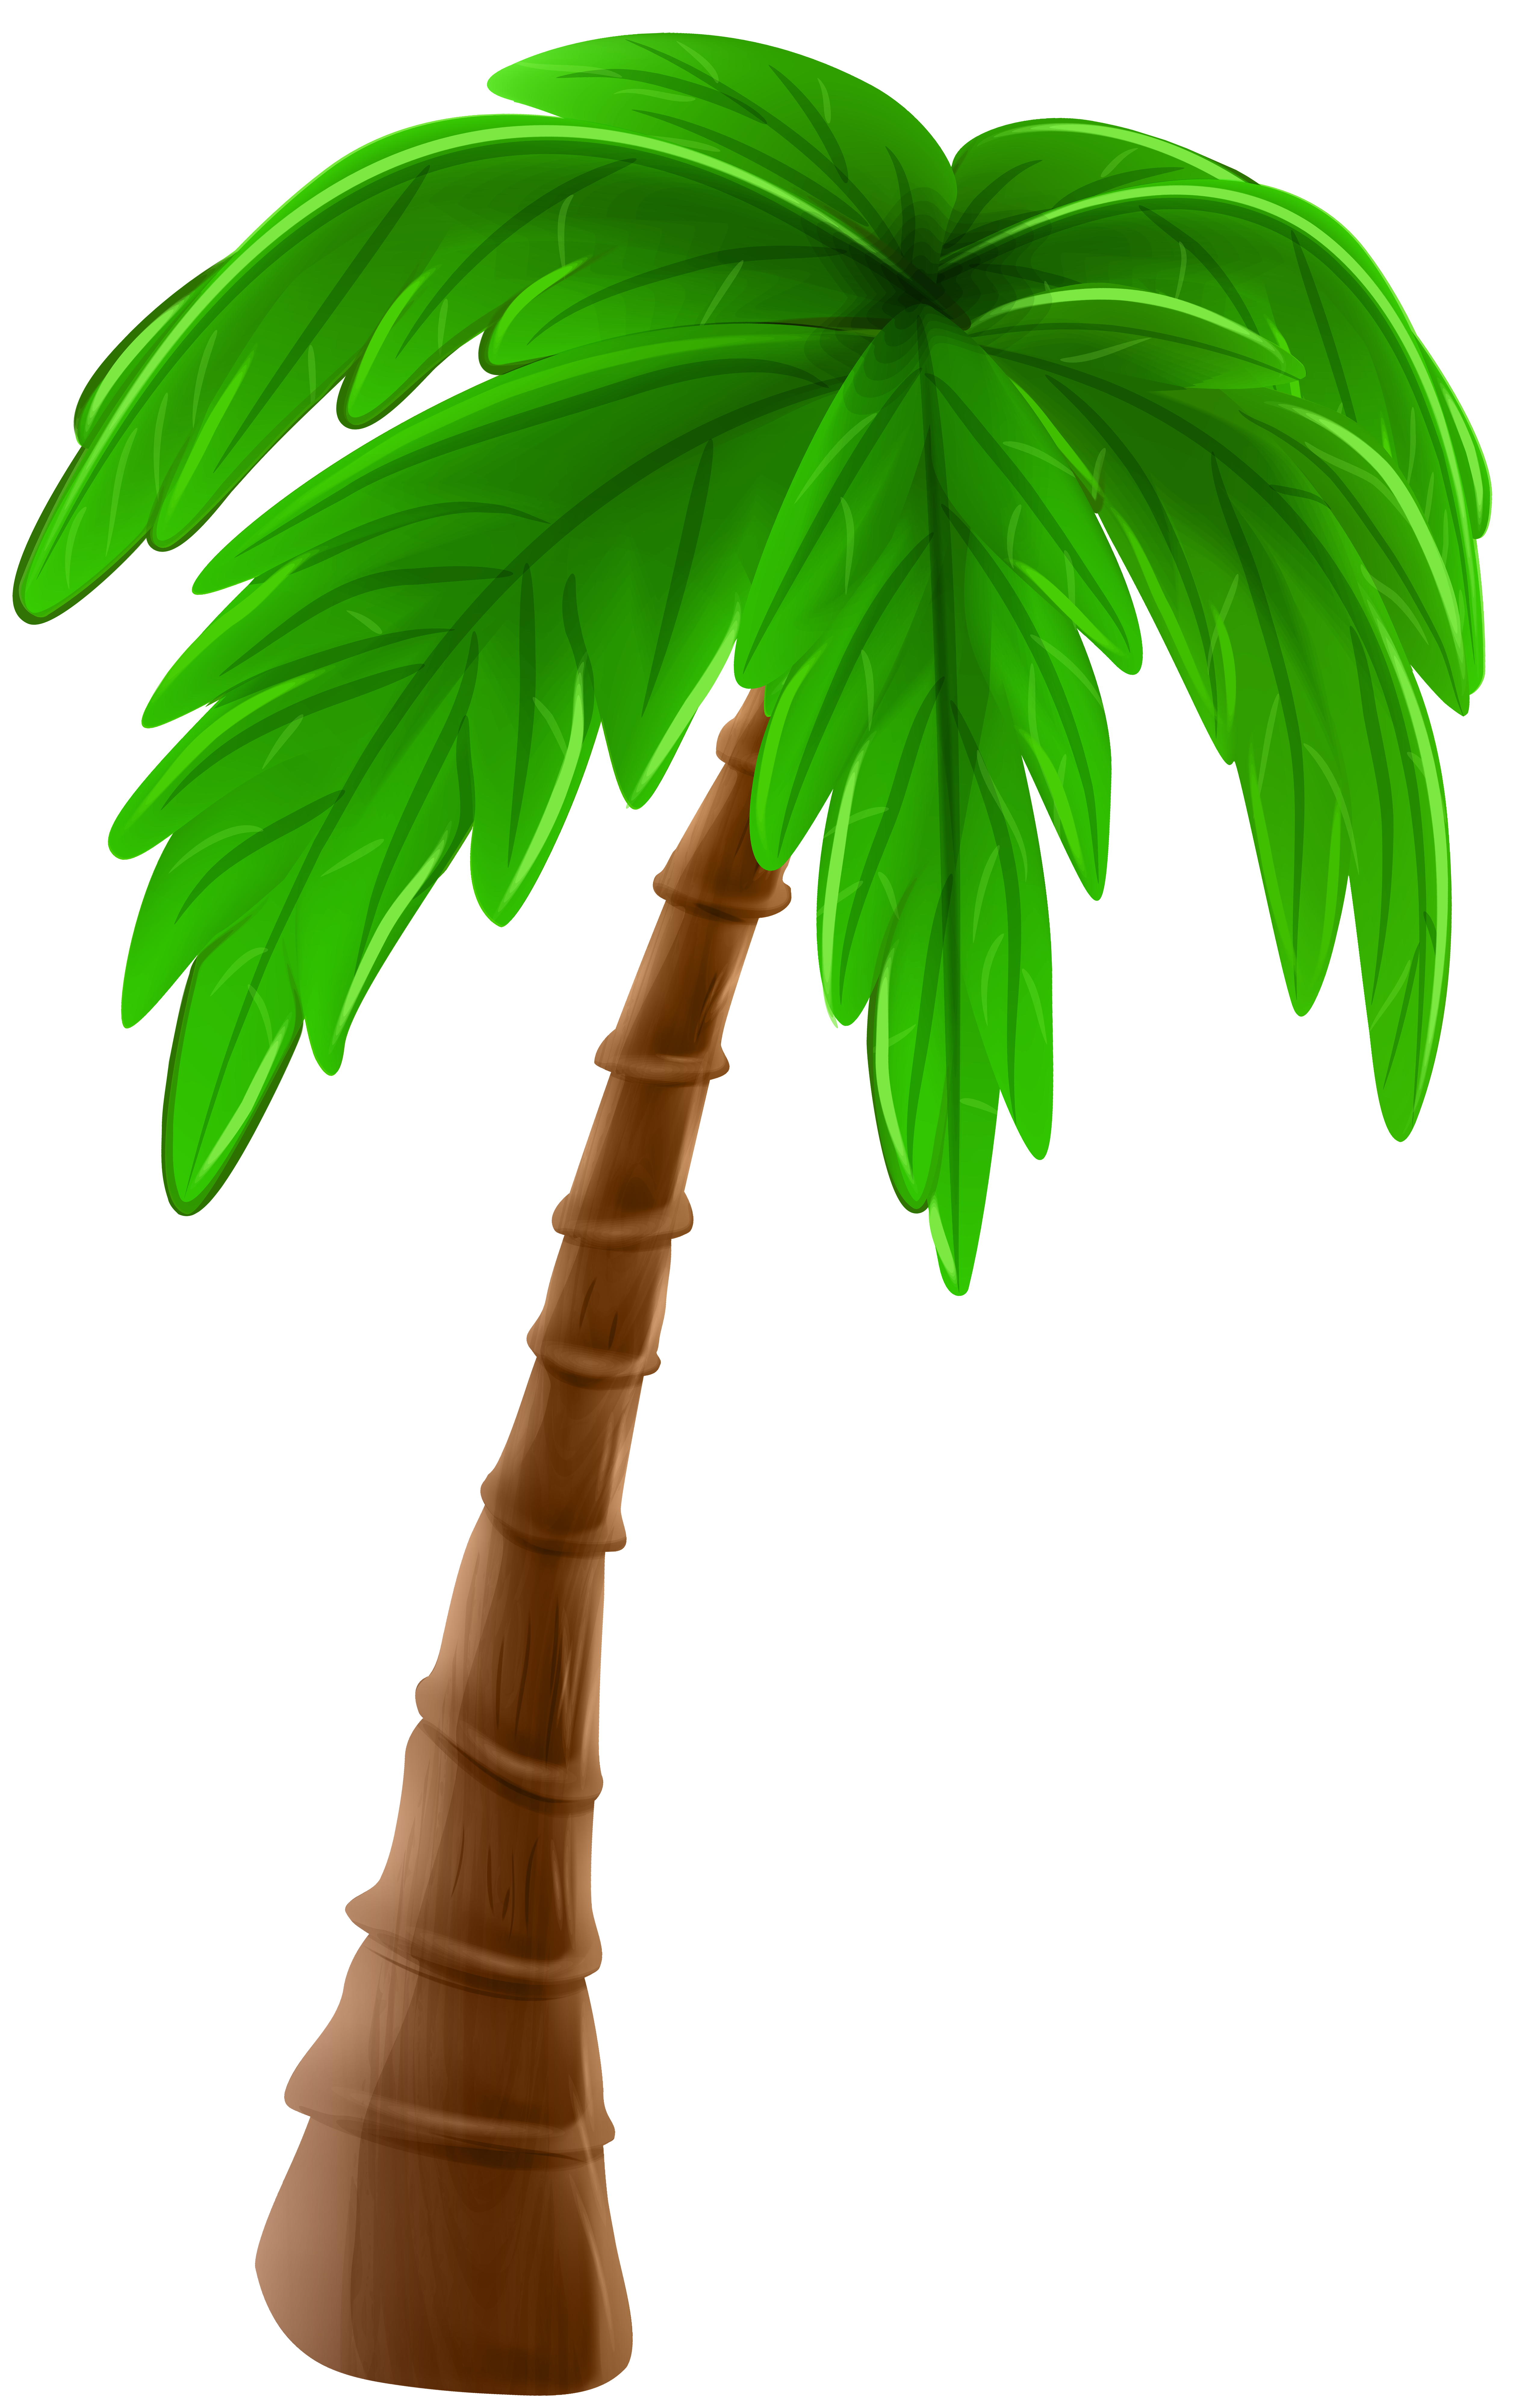 Palm Tree Leaves Clipart Yahoo Image Search Results Palm Tree Clip Art Cartoon Palm Tree Cartoon Trees